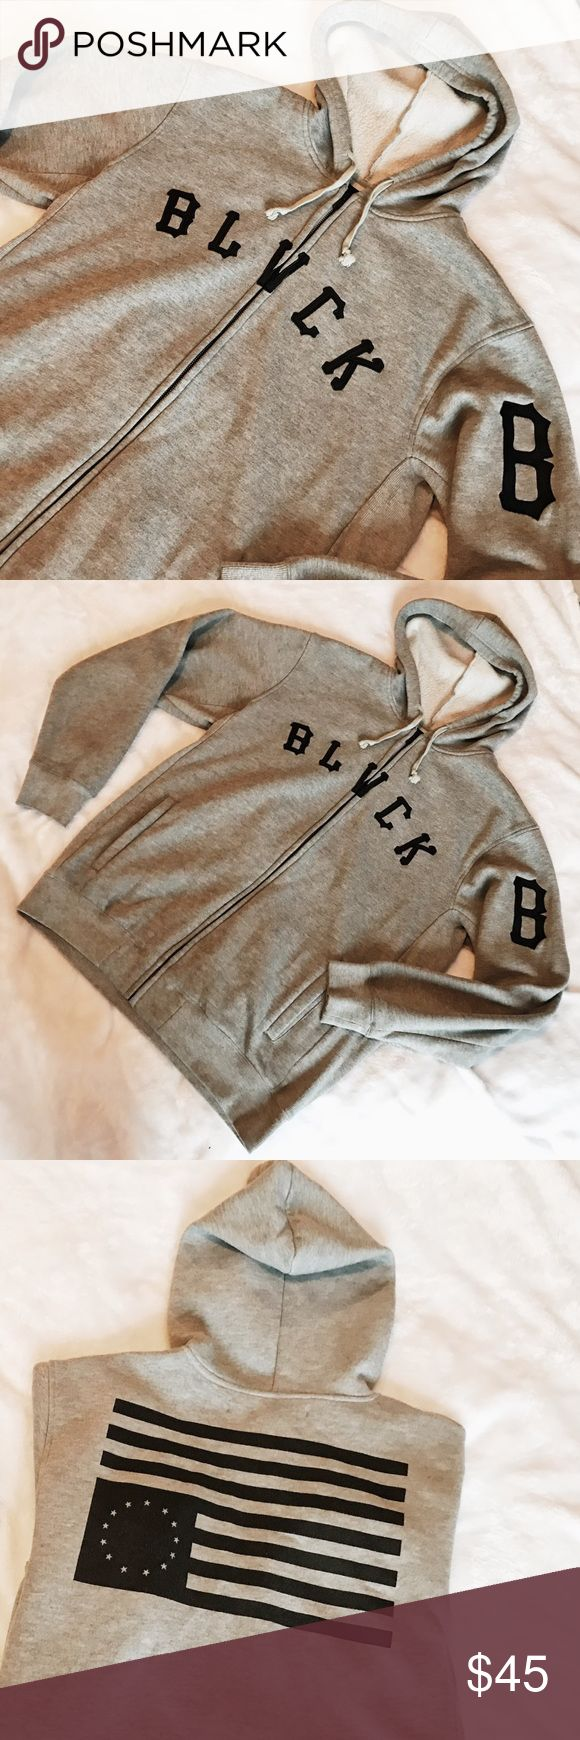 Black Scale : Grey zip up hoodie Black Scale: Grey zip up hoodie / 80% Cotton 20% Poly/ XL/ Embroidery on front, print on back / Worn and washed only a couple times, in like new condition free of stains or visible flaws. Black Scale Sweaters Zip Up